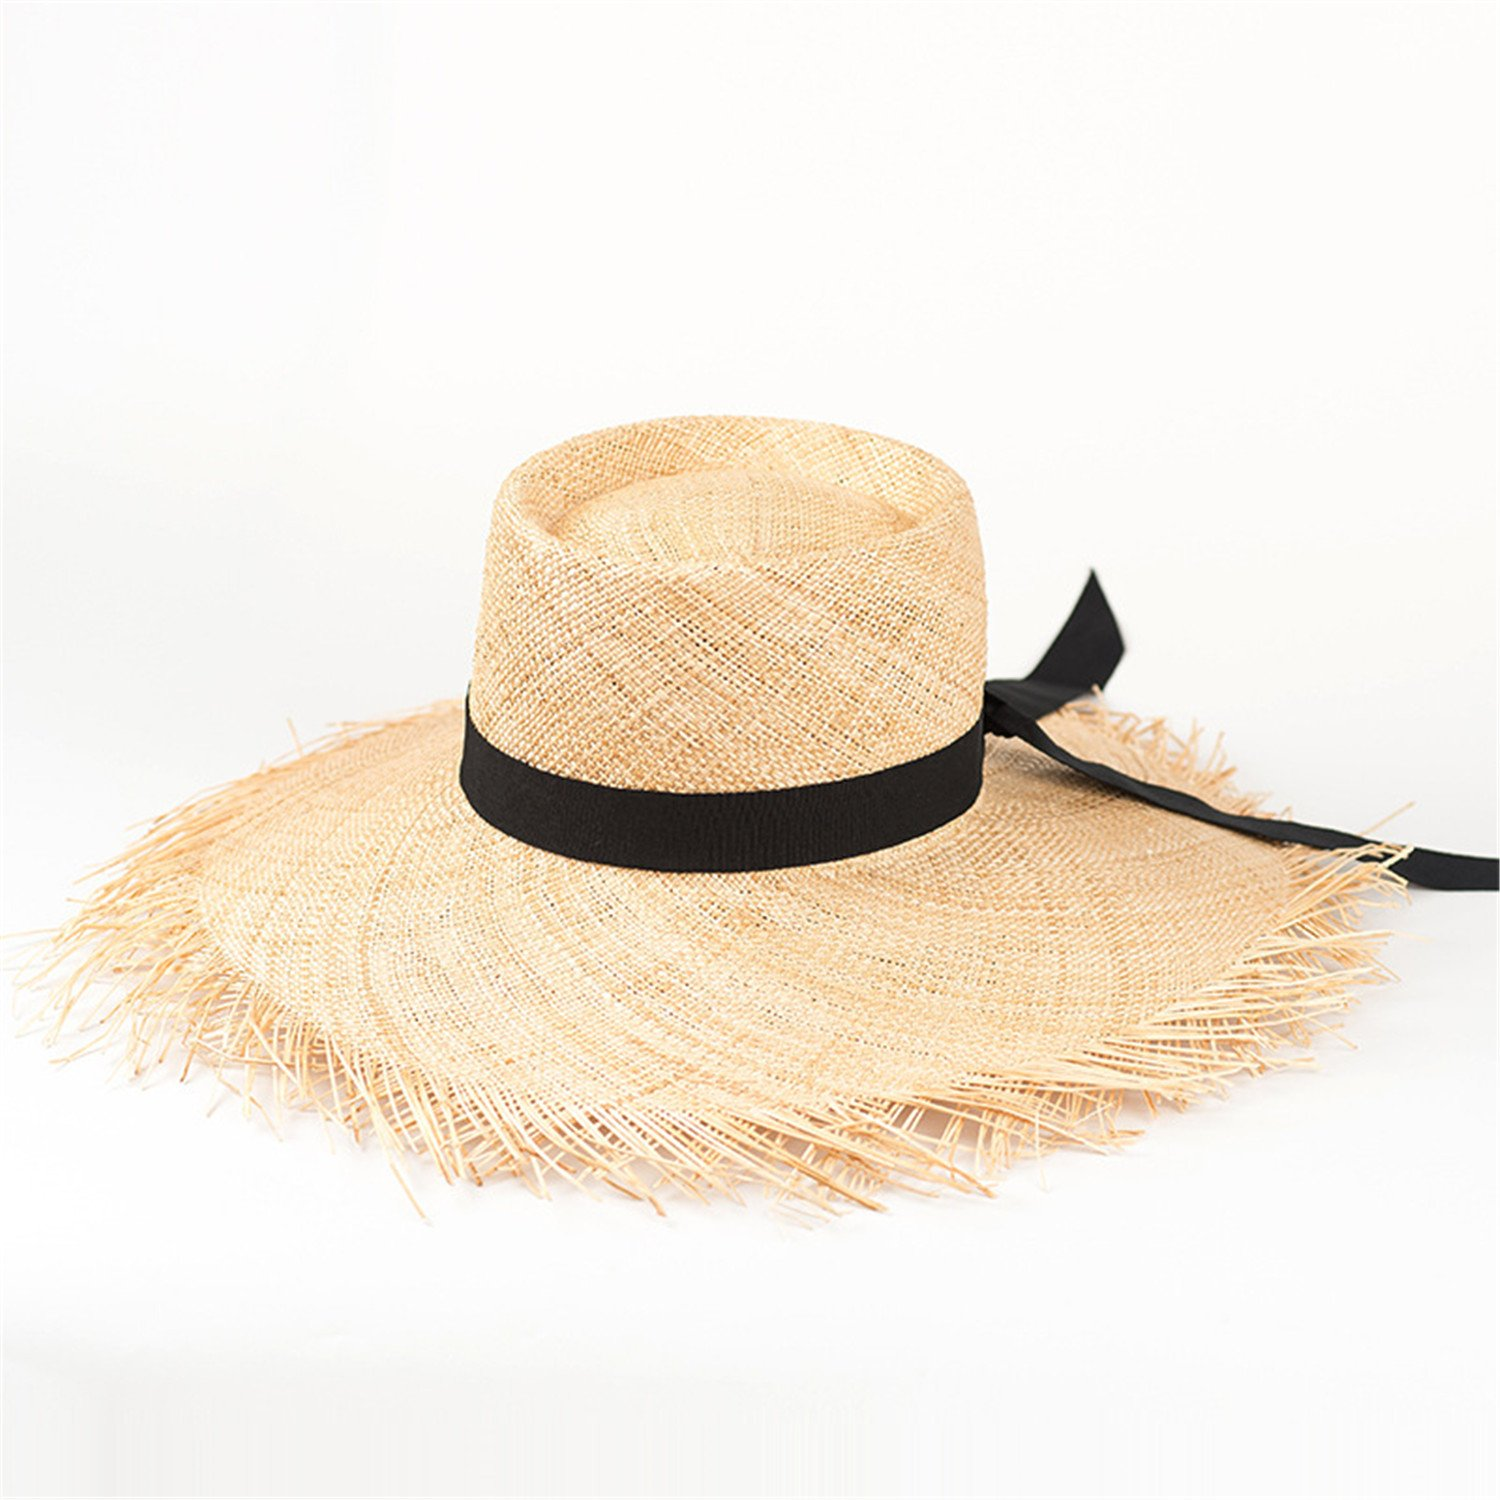 bbba3b78aec Hat Summer Women Straw Bucket Hat New Fashion Beach Sun Hats Panama Hats  with Frayed Edges 681002 001 Bow OSFM at Amazon Women s Clothing store